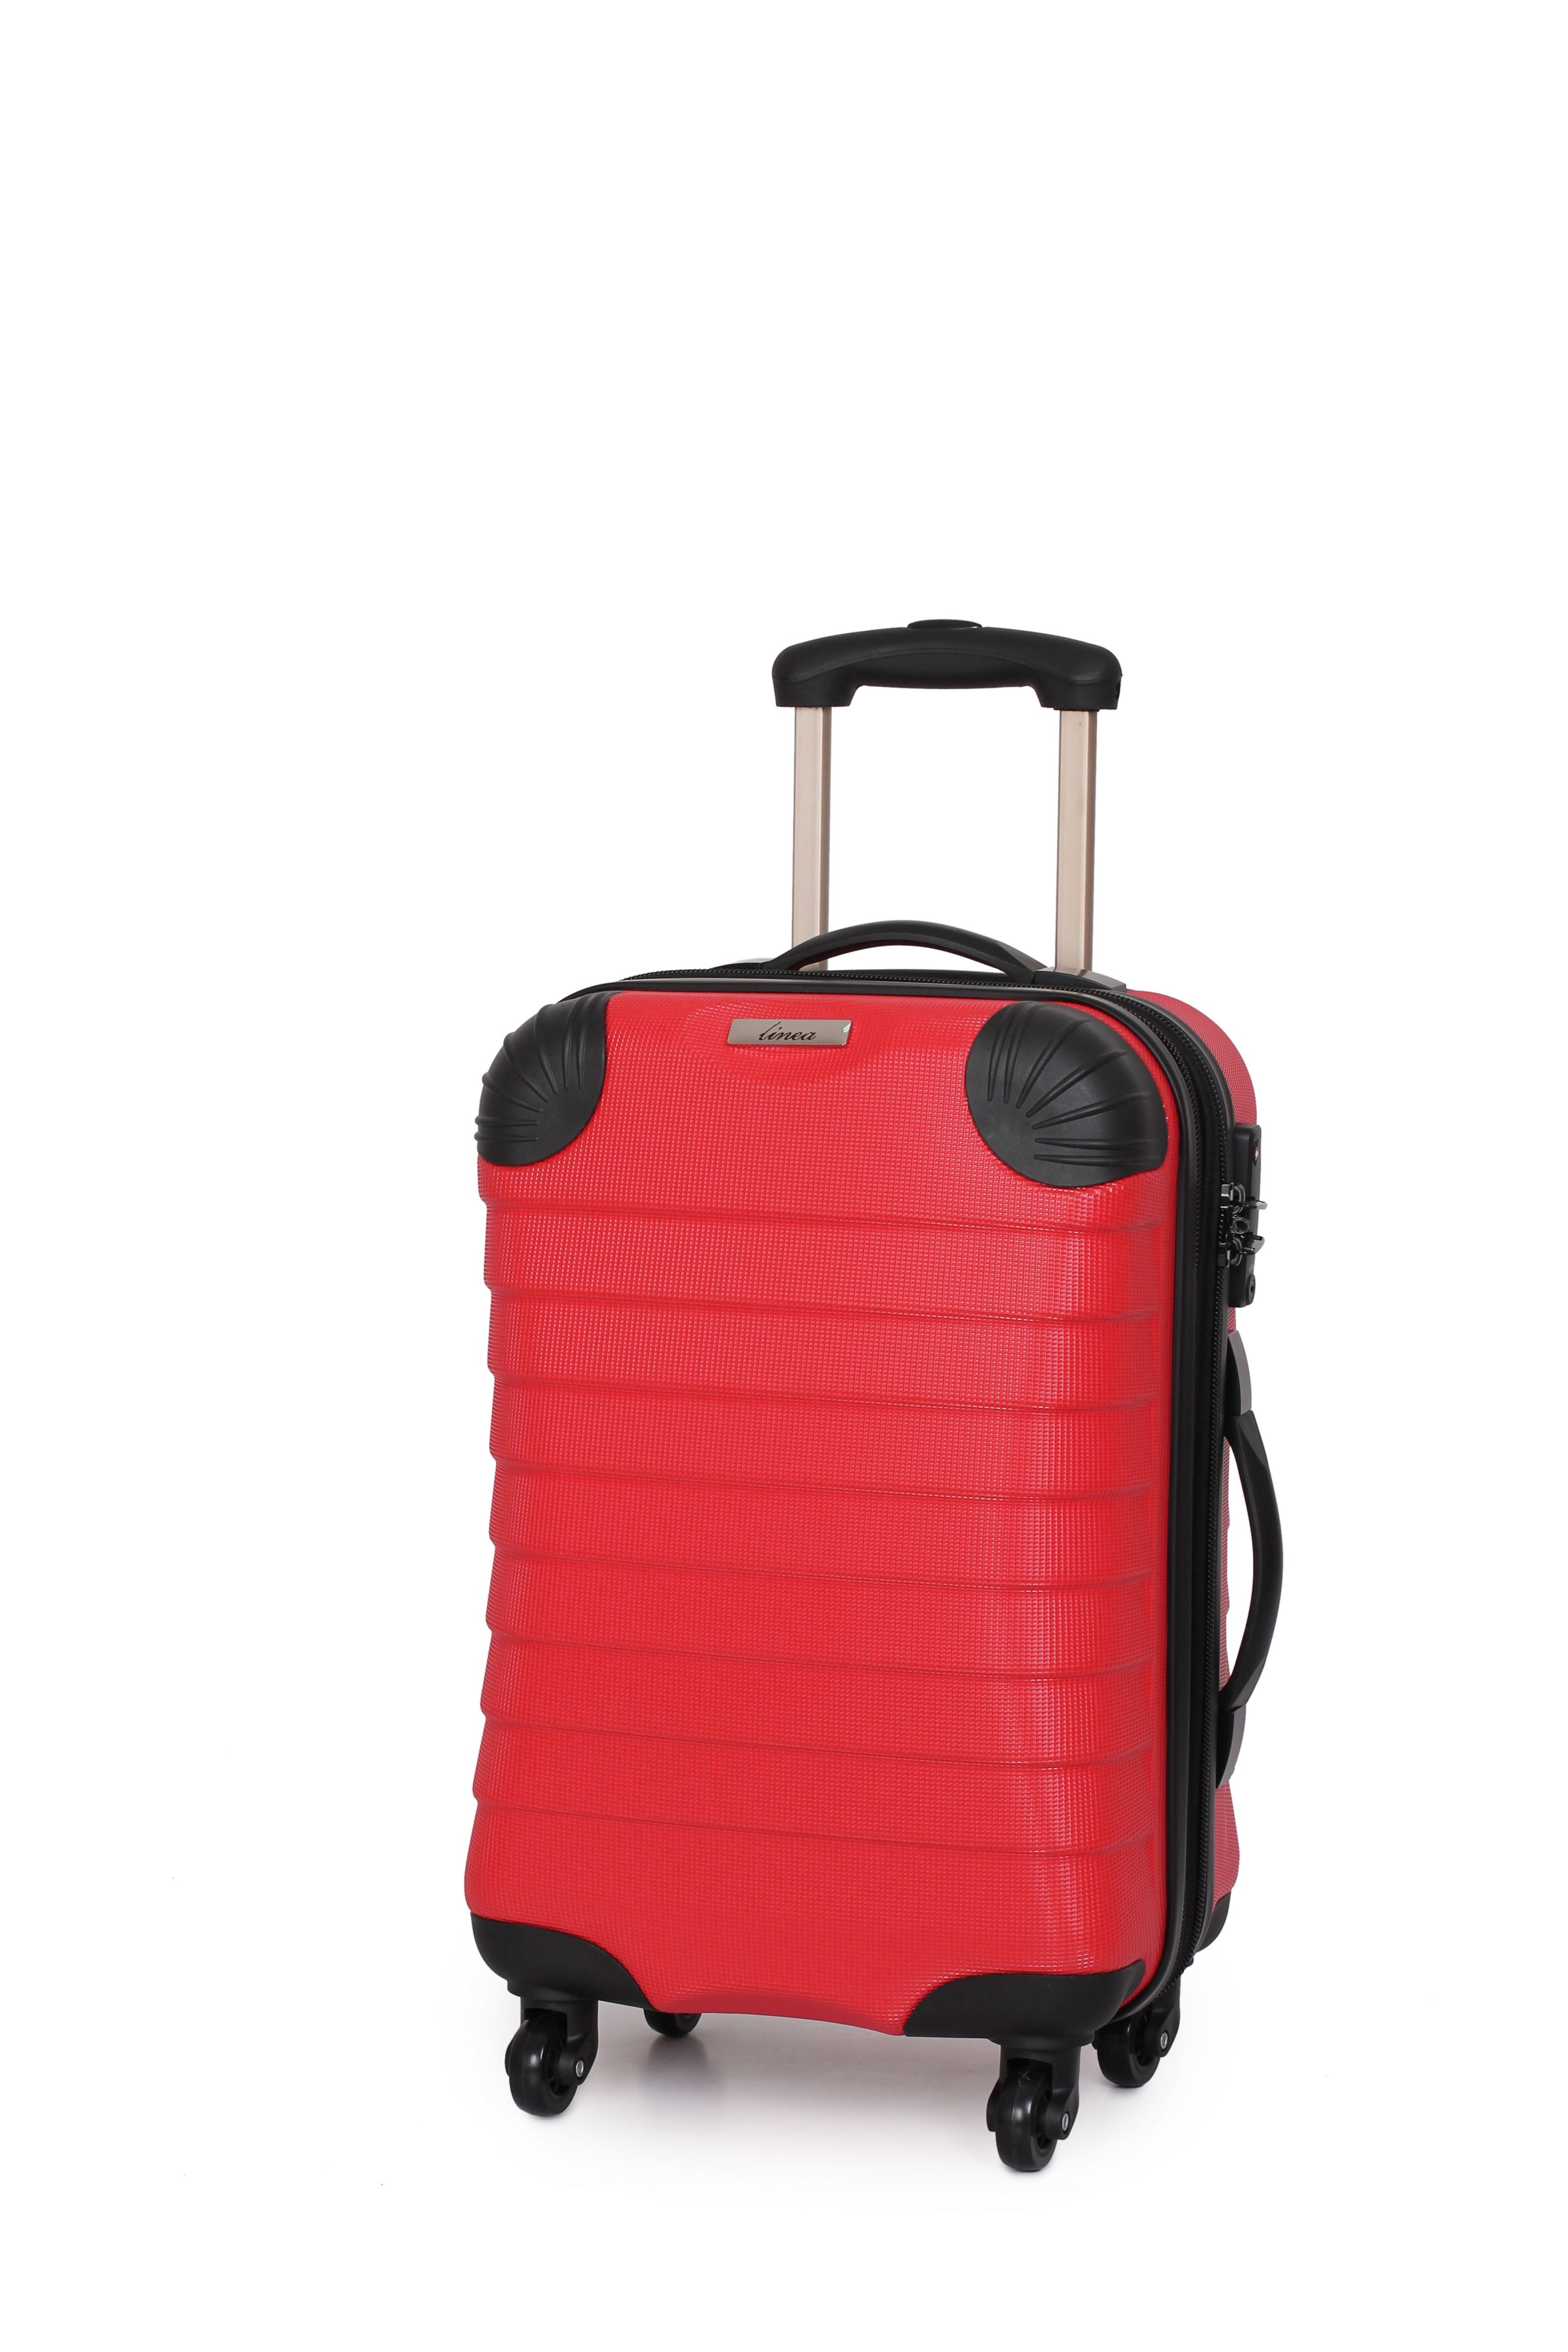 Linea Shell red 4 wheel hard cabin suitcase Red